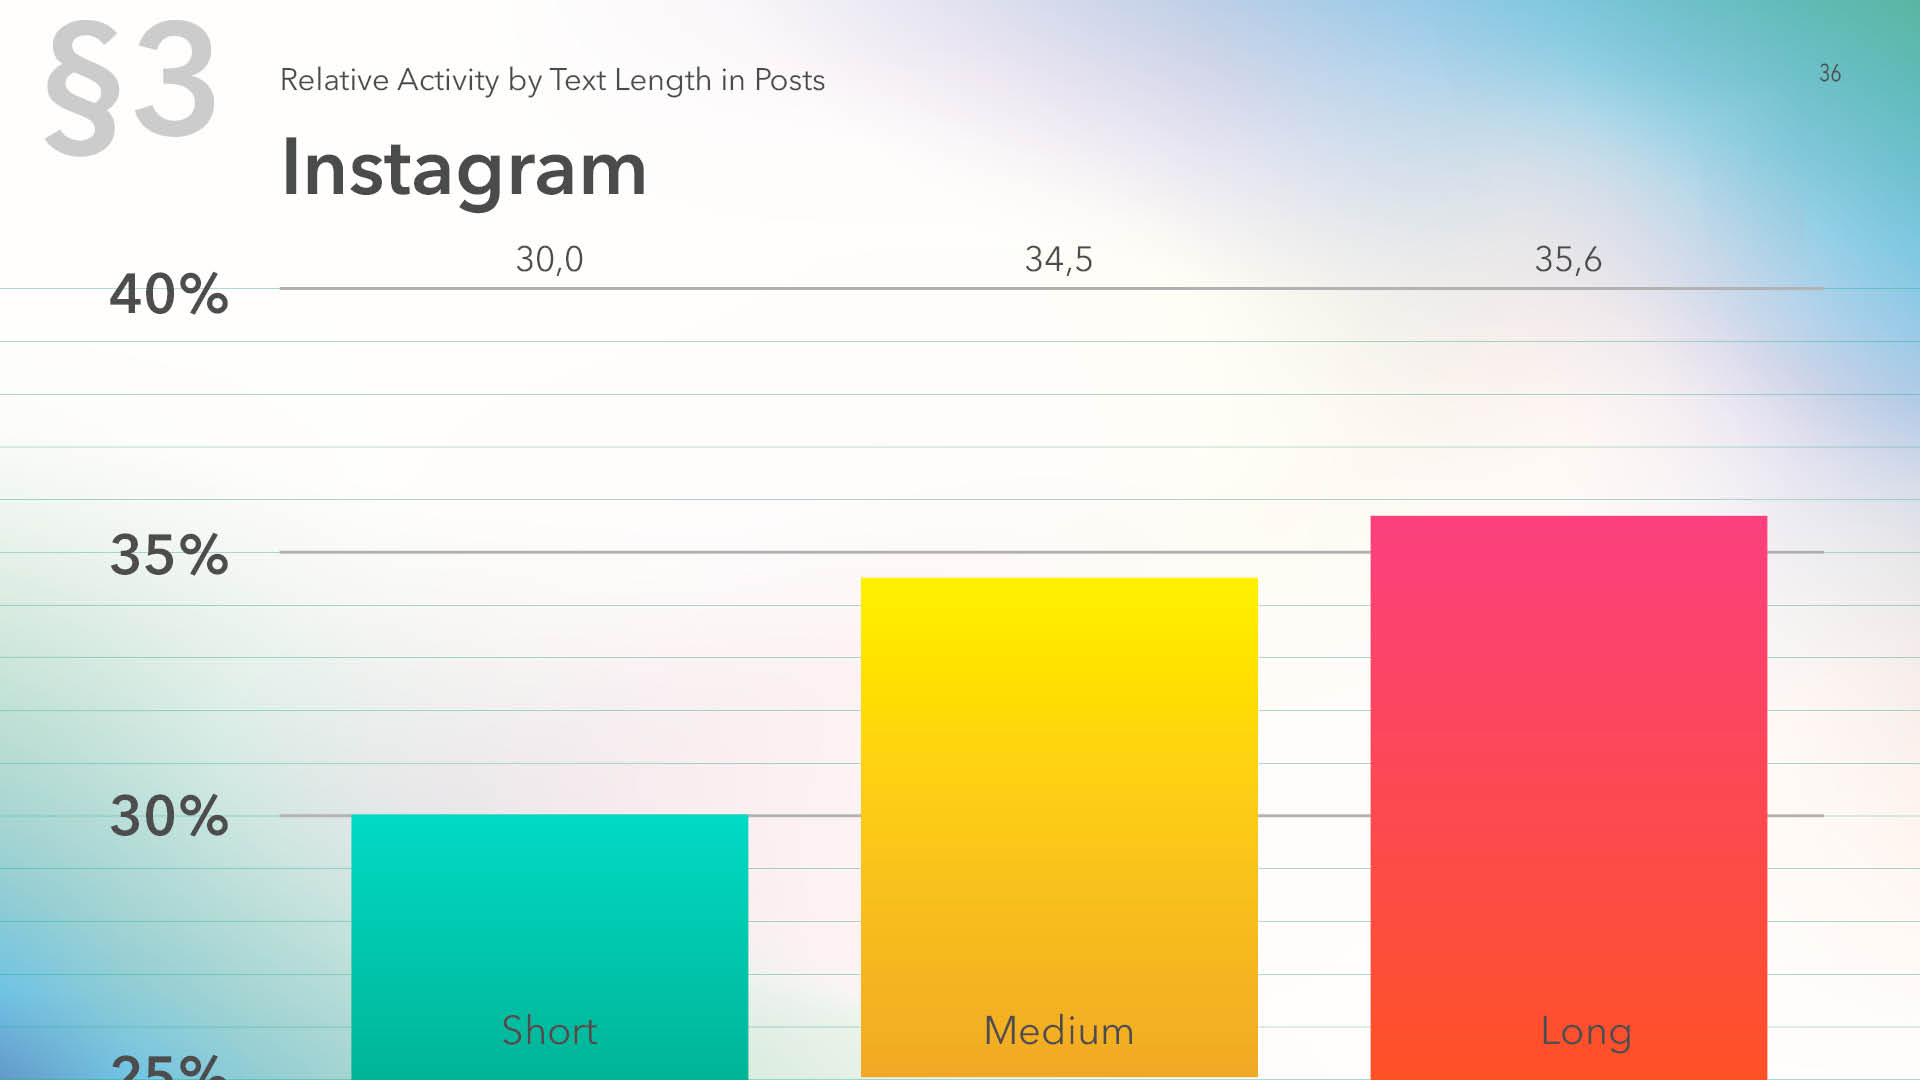 Relative activity on Instagram by text length in posts